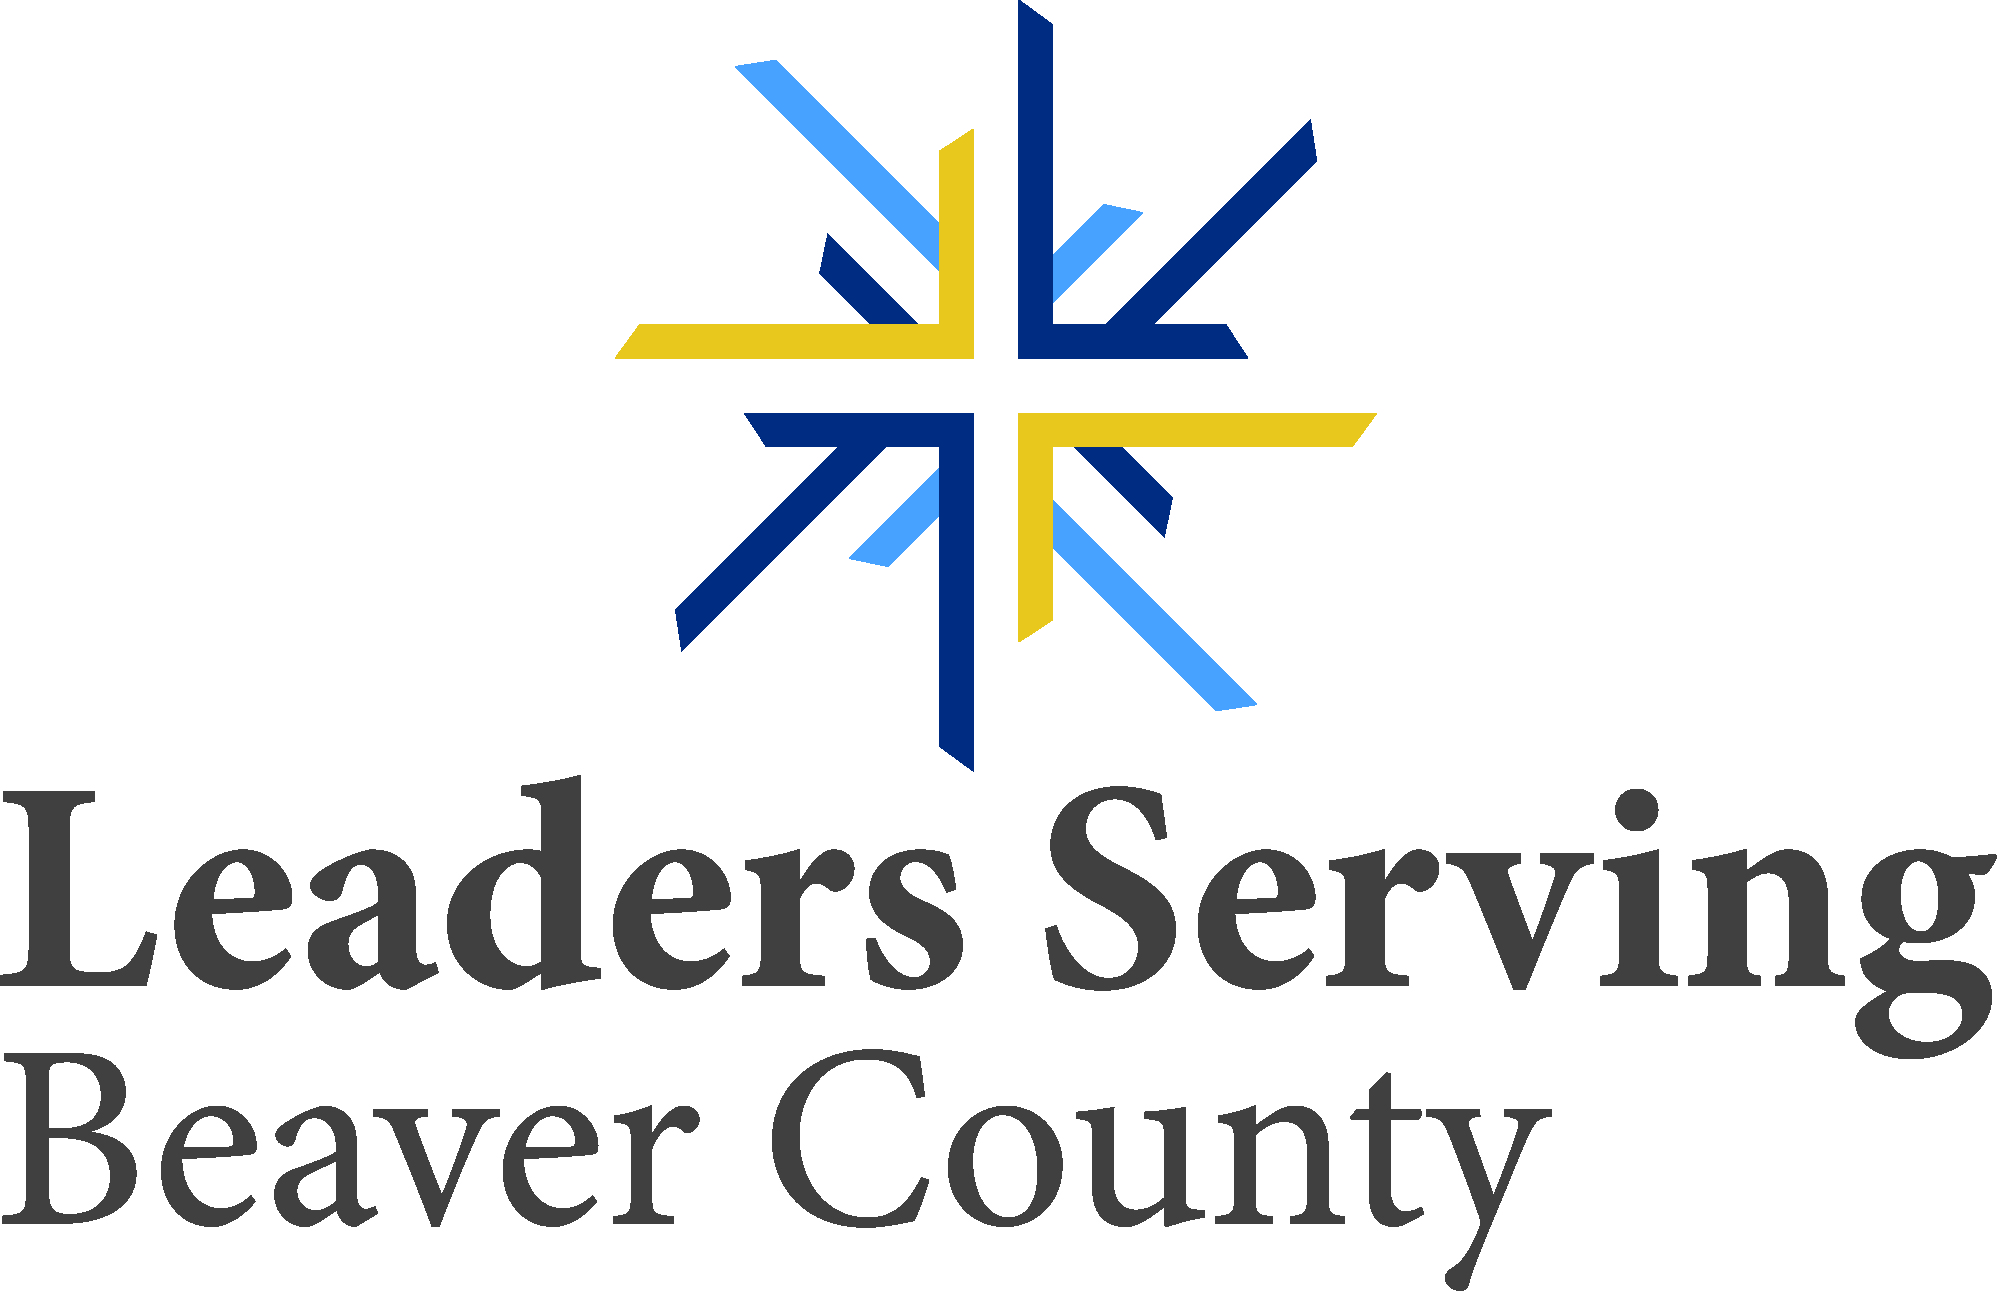 Leader Serving Beaver County